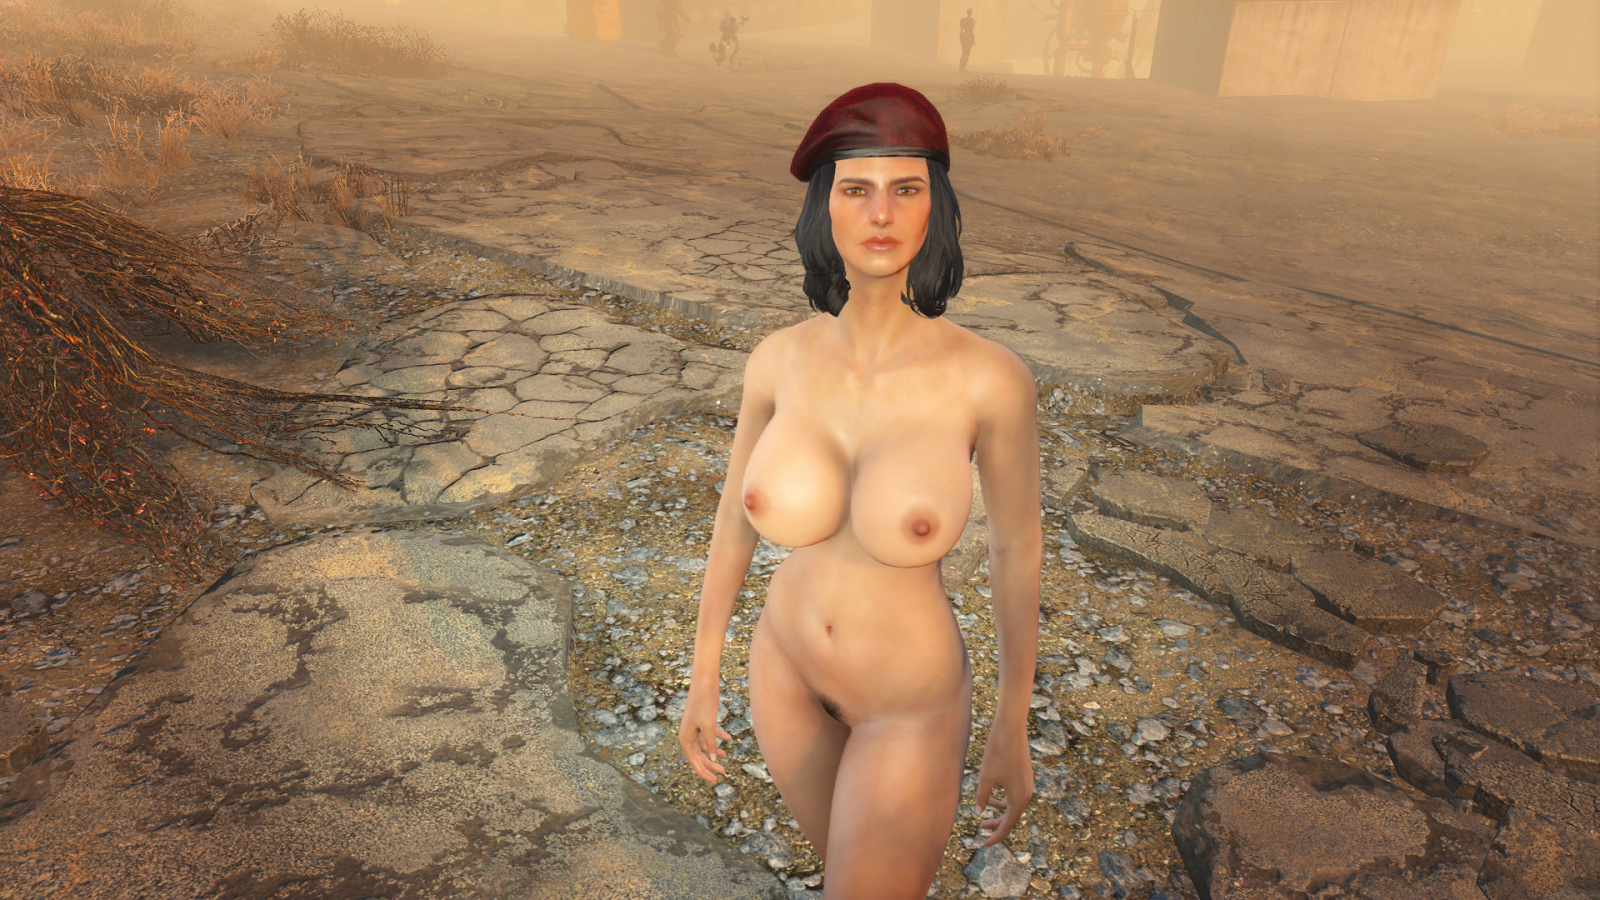 Piper fallout 4 naked